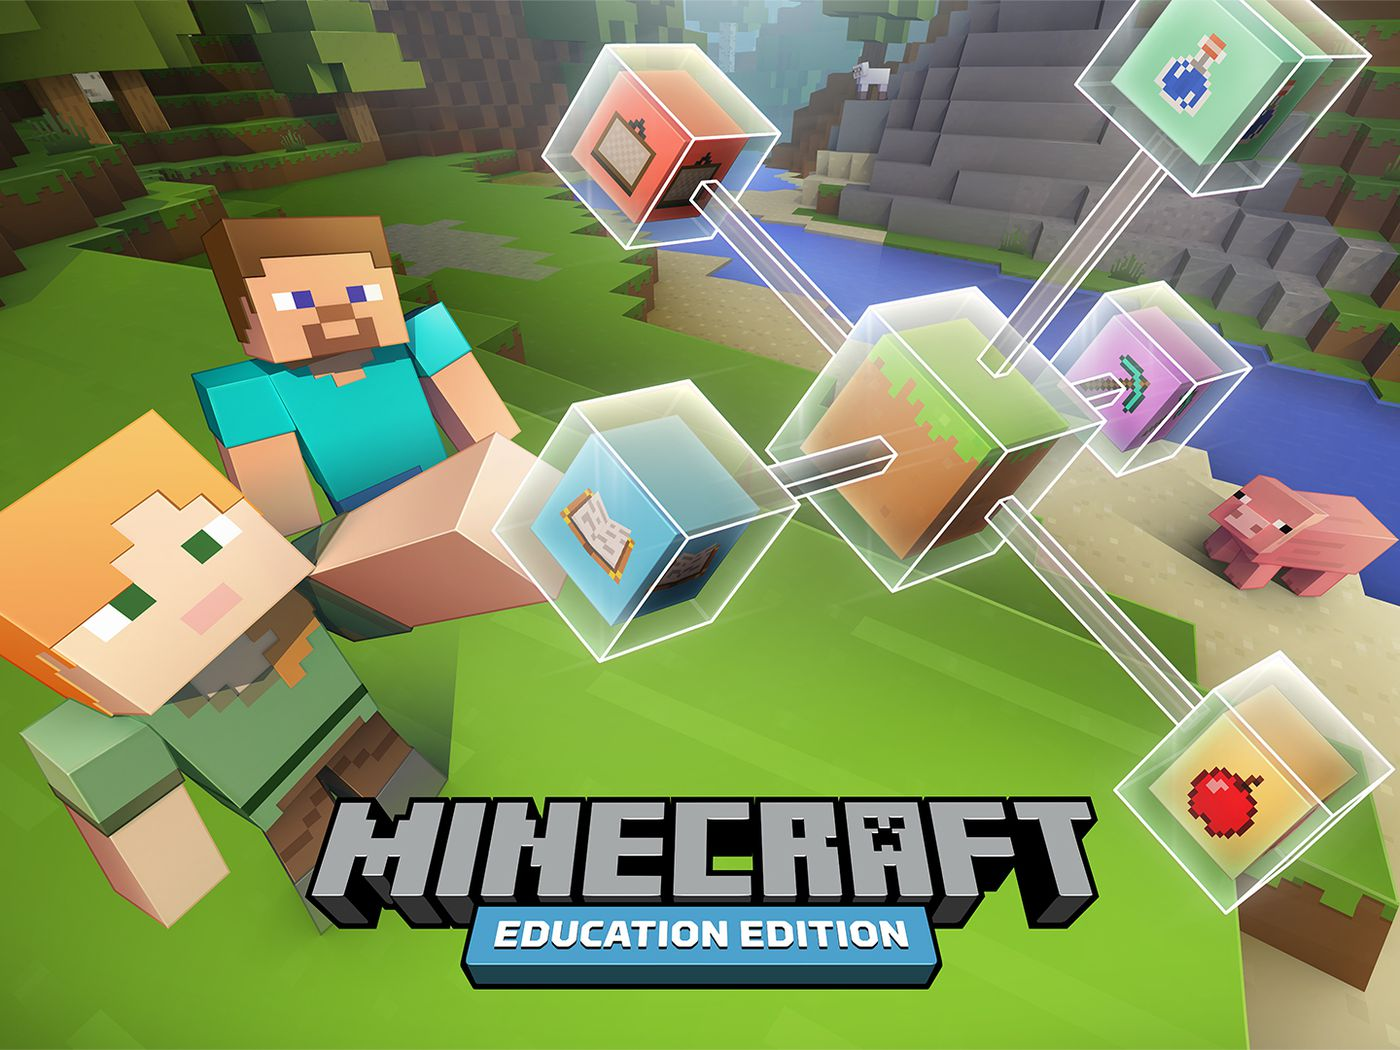 Minecraft_Education_Edition_1920x1080.0.0